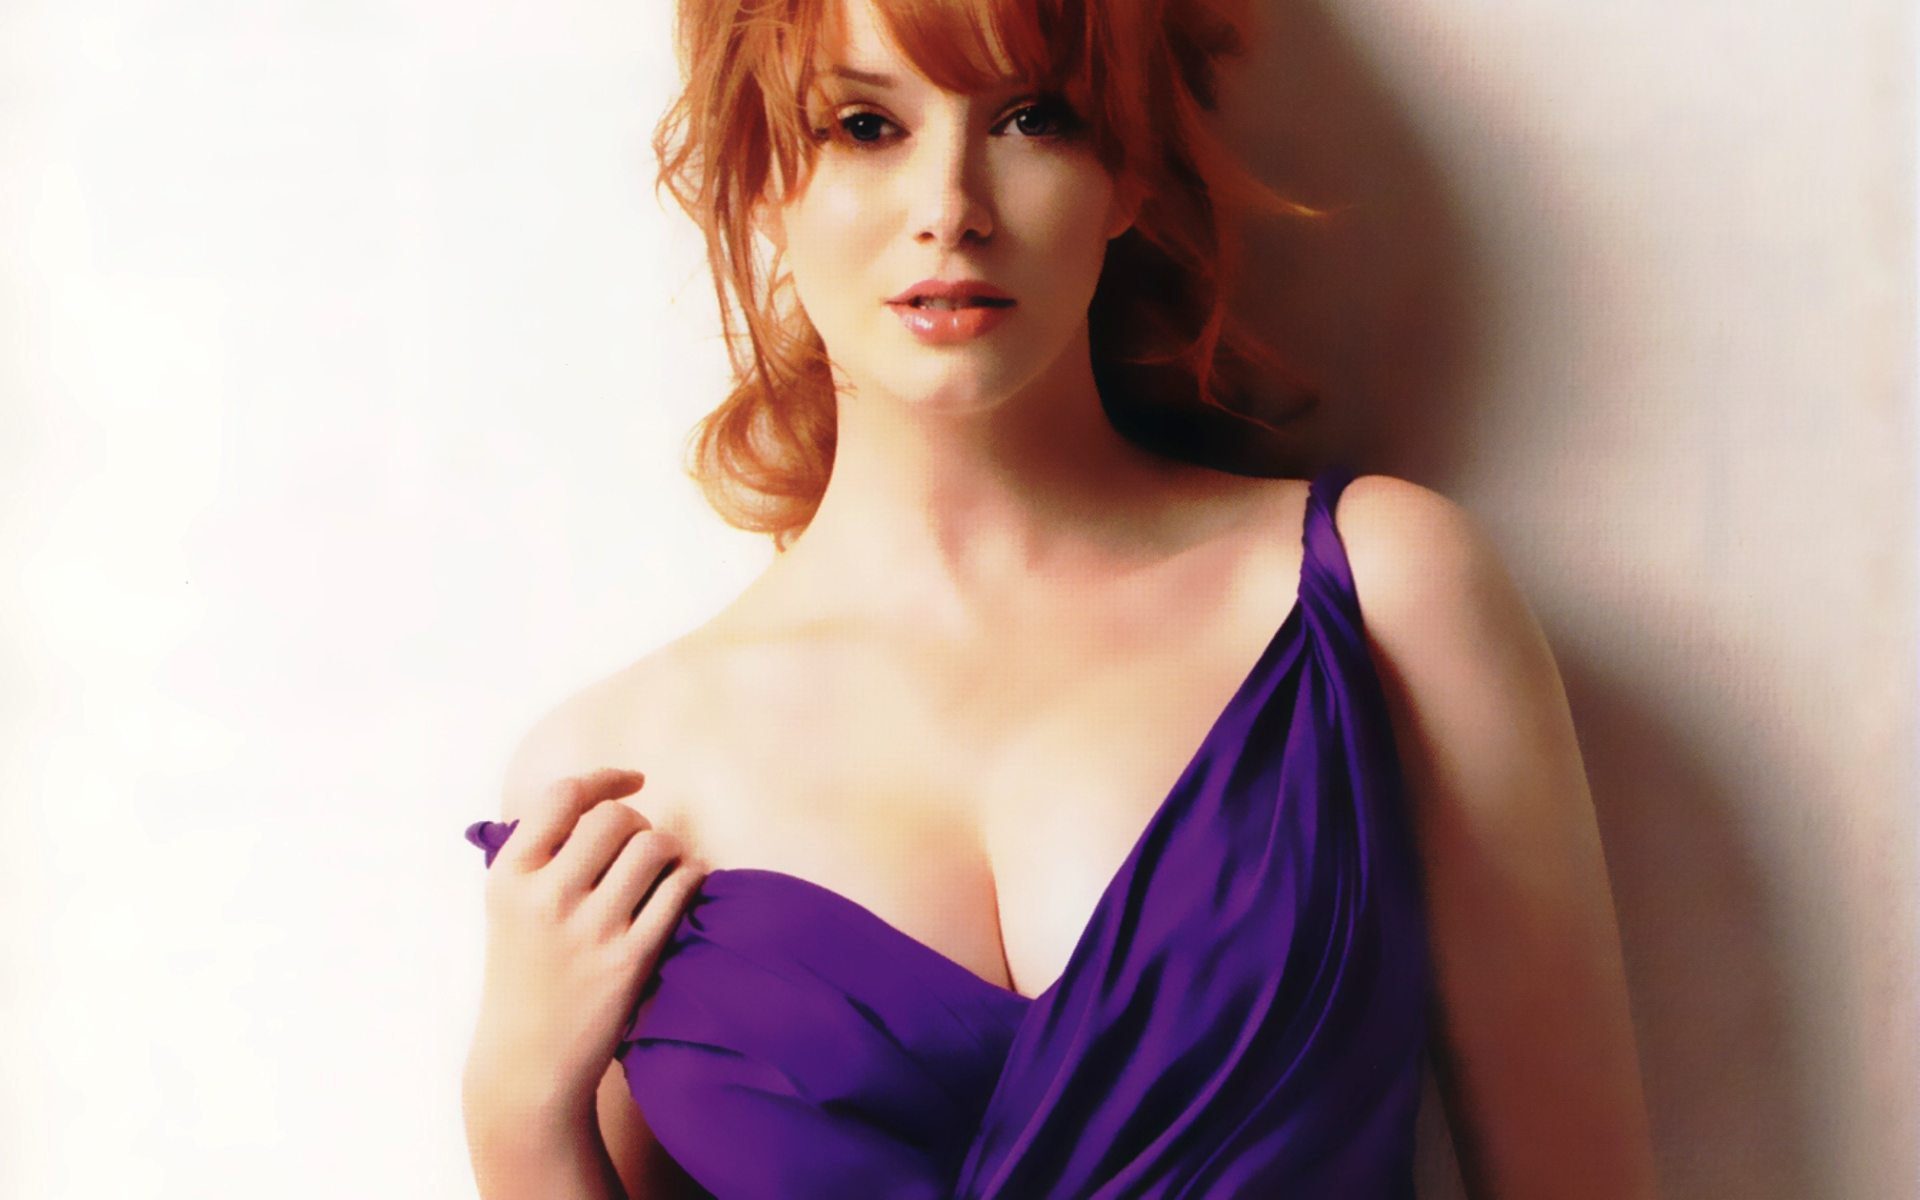 christina-hendricks-babe-in-blue-dress.jpg